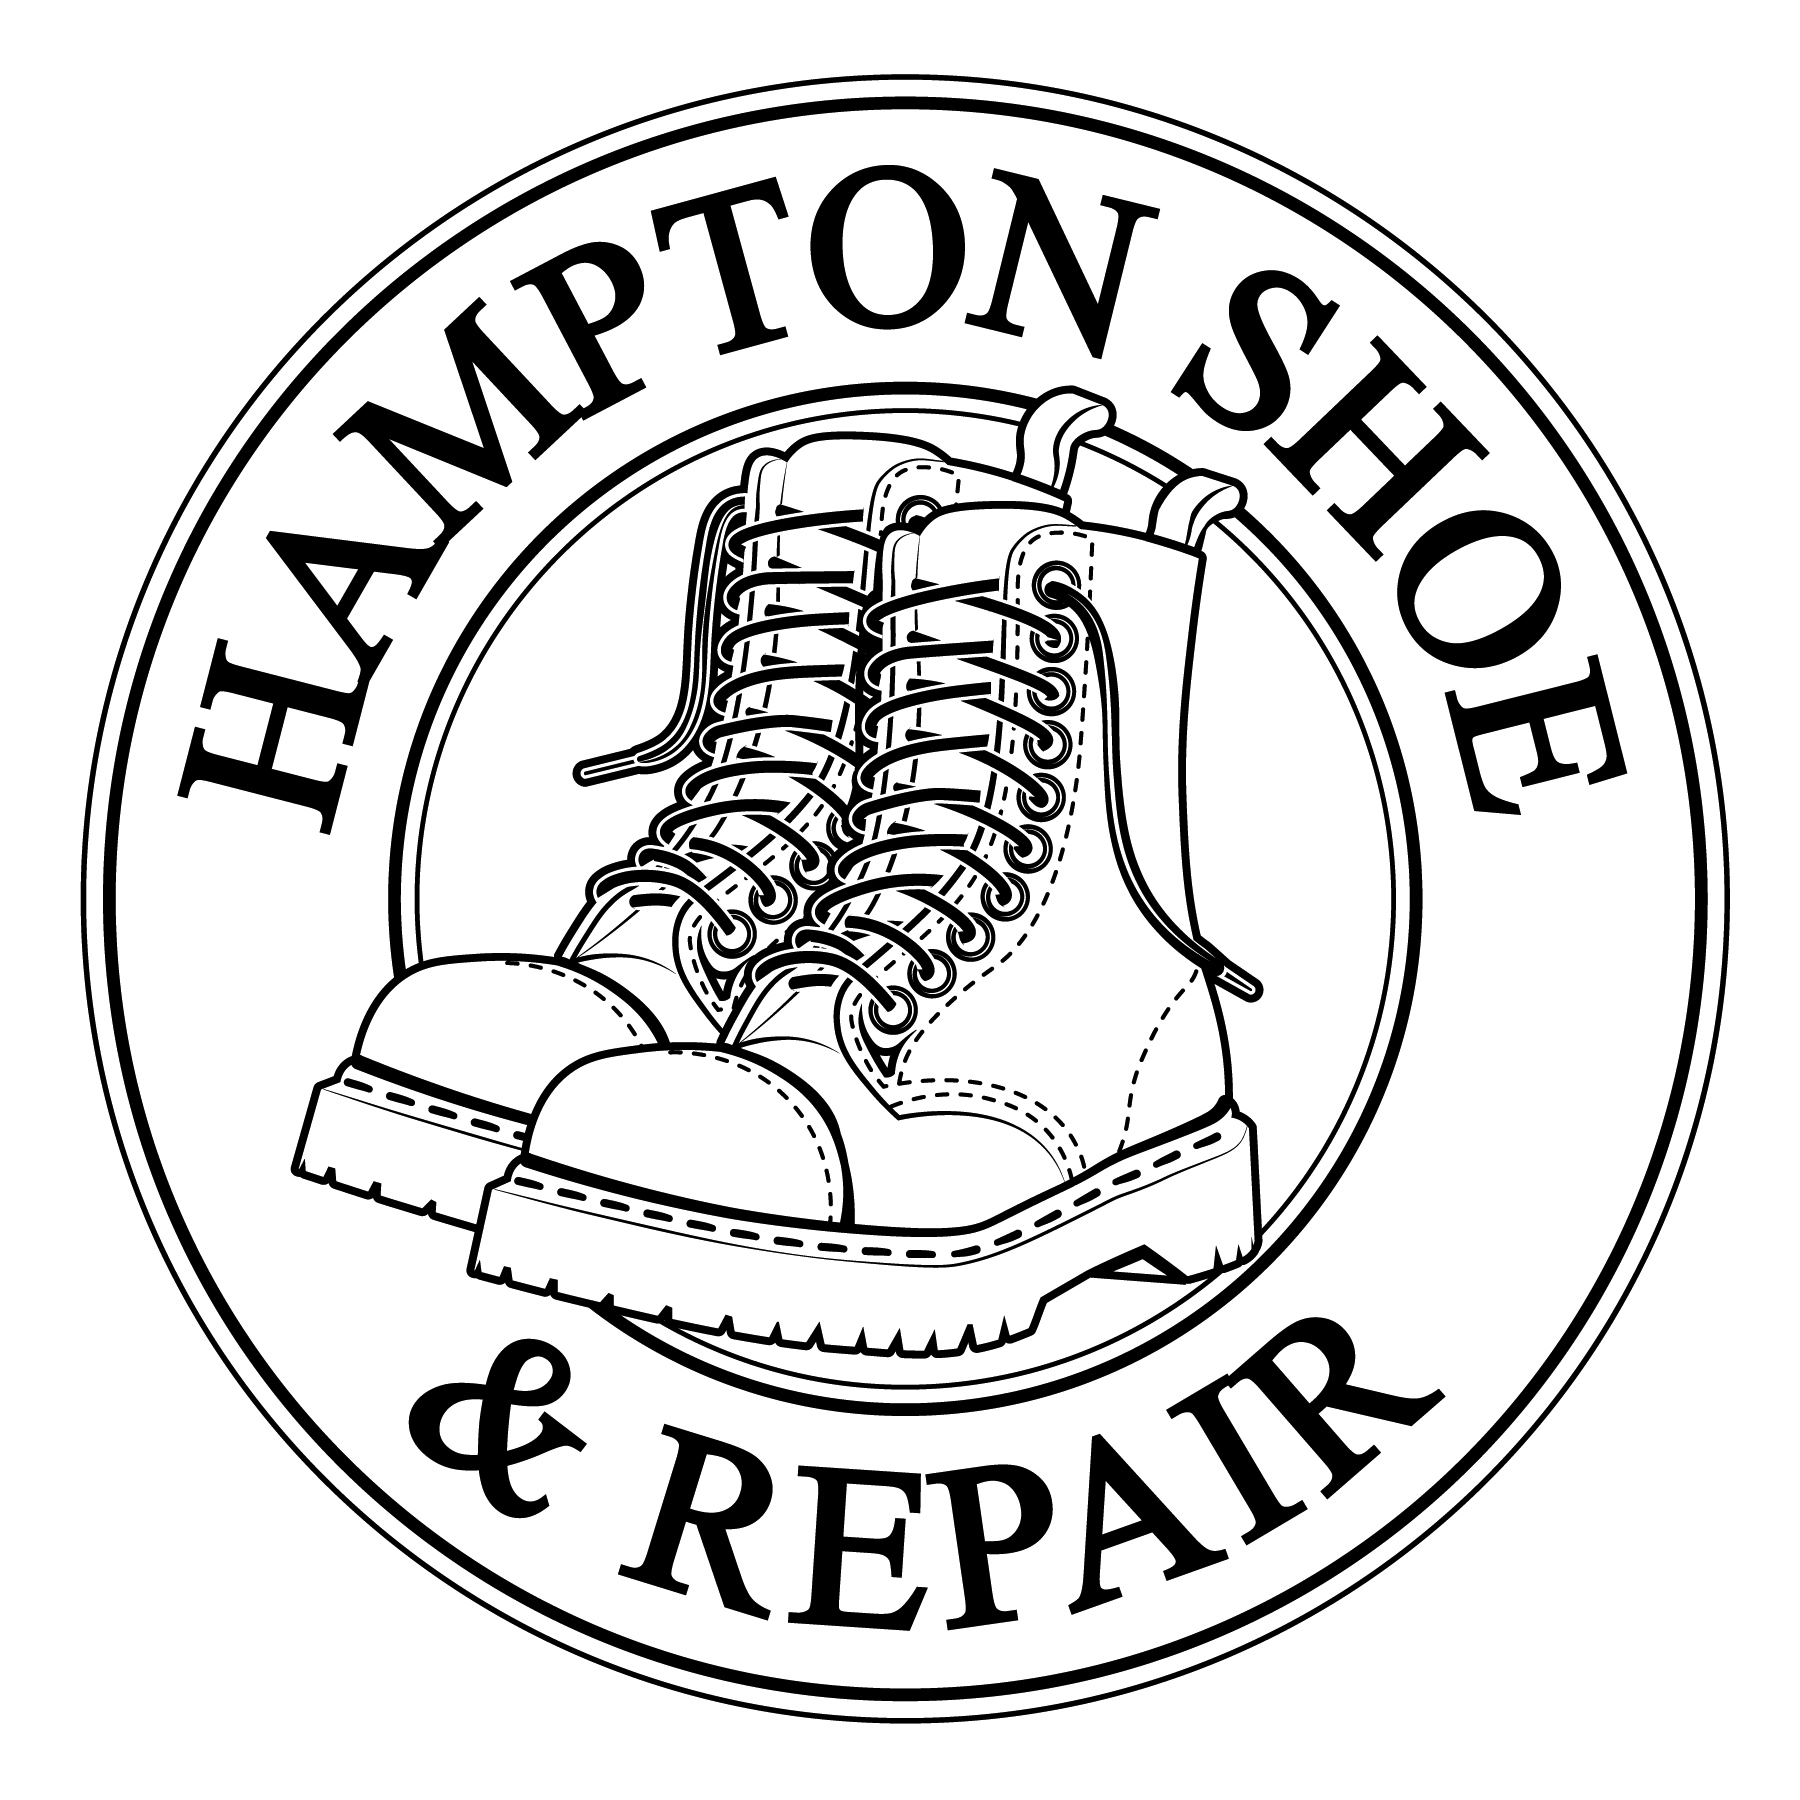 hampton-shoe-logo-boots-bl-on-wh.jpg